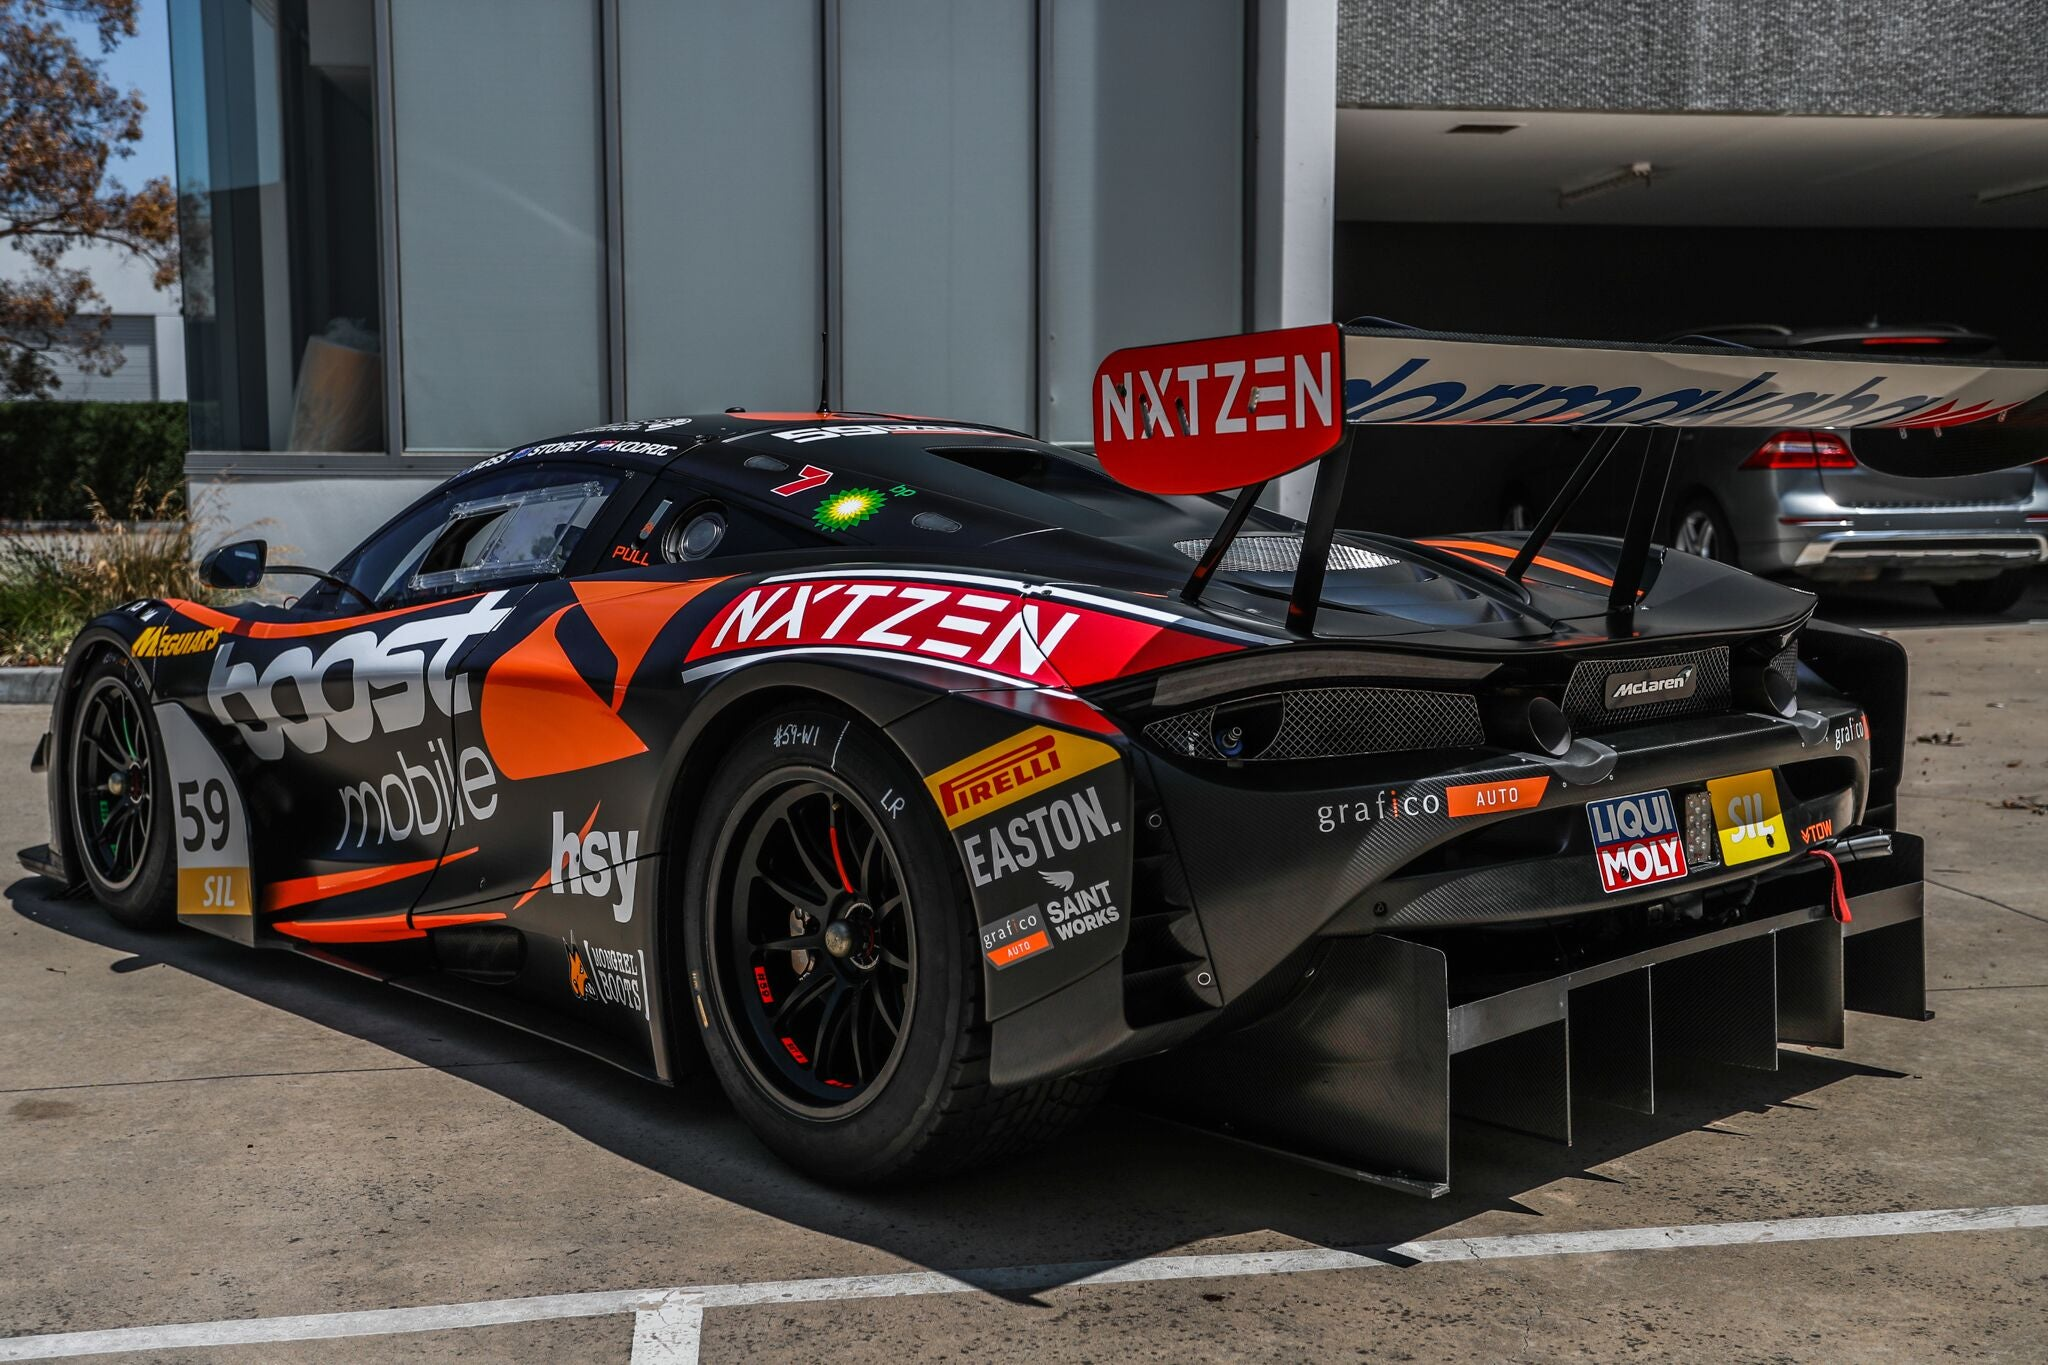 NXTZEN joins 59Racing for Bathurst 12 Hour